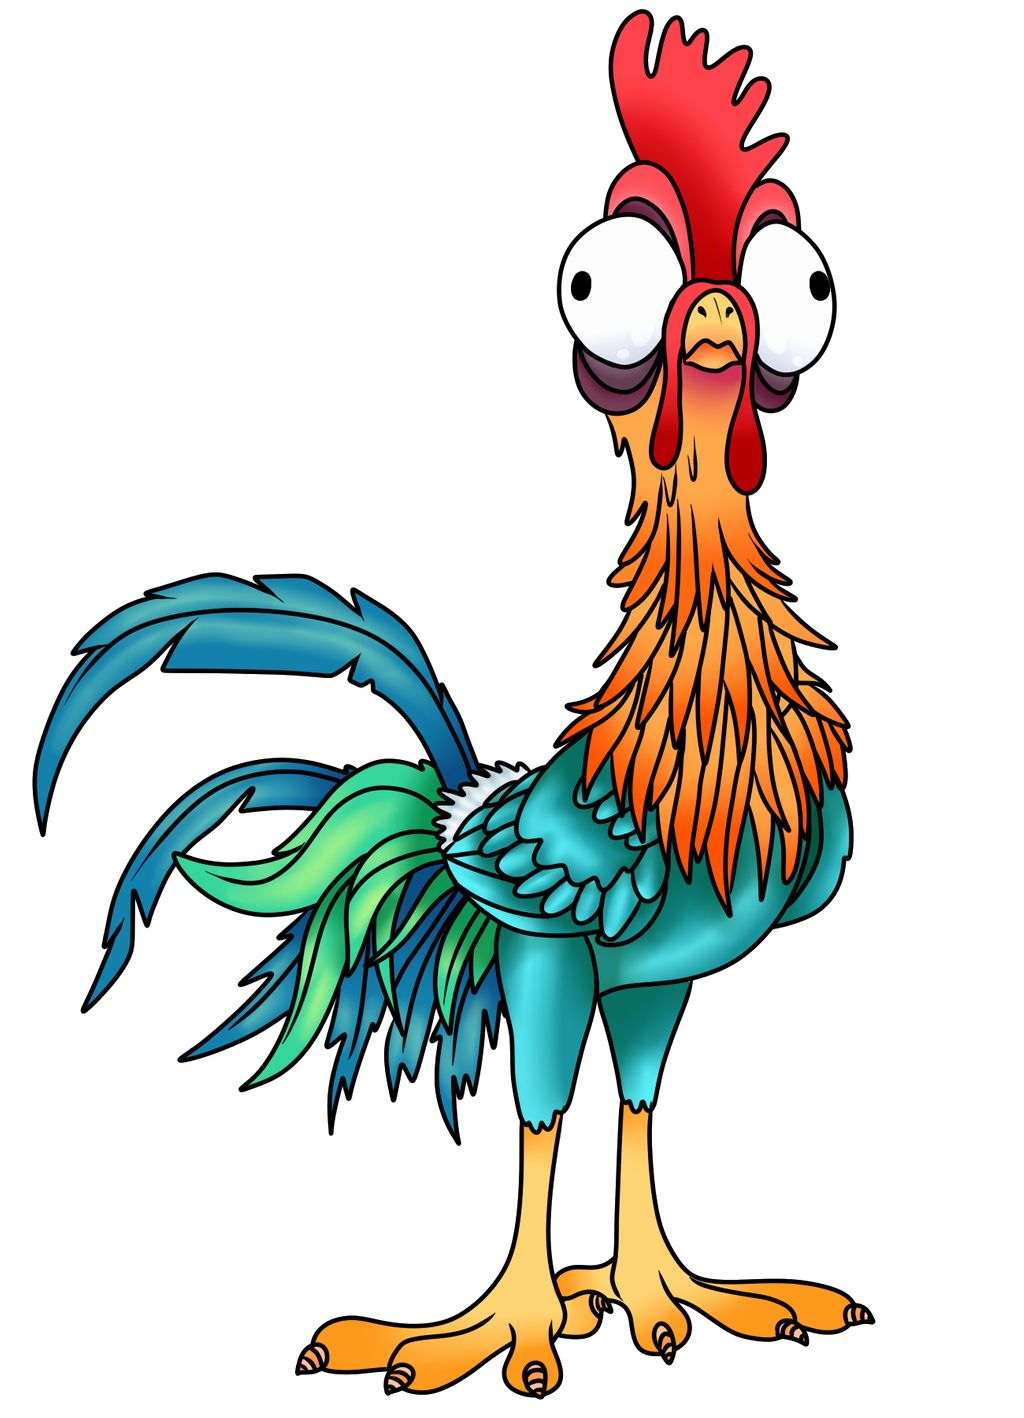 Hei Hei Coloring Page Luxury Moana Heihei Coloring Pages Hellokids Wickedbabesblog Com Rooster Art Animal Drawings Cute Drawings